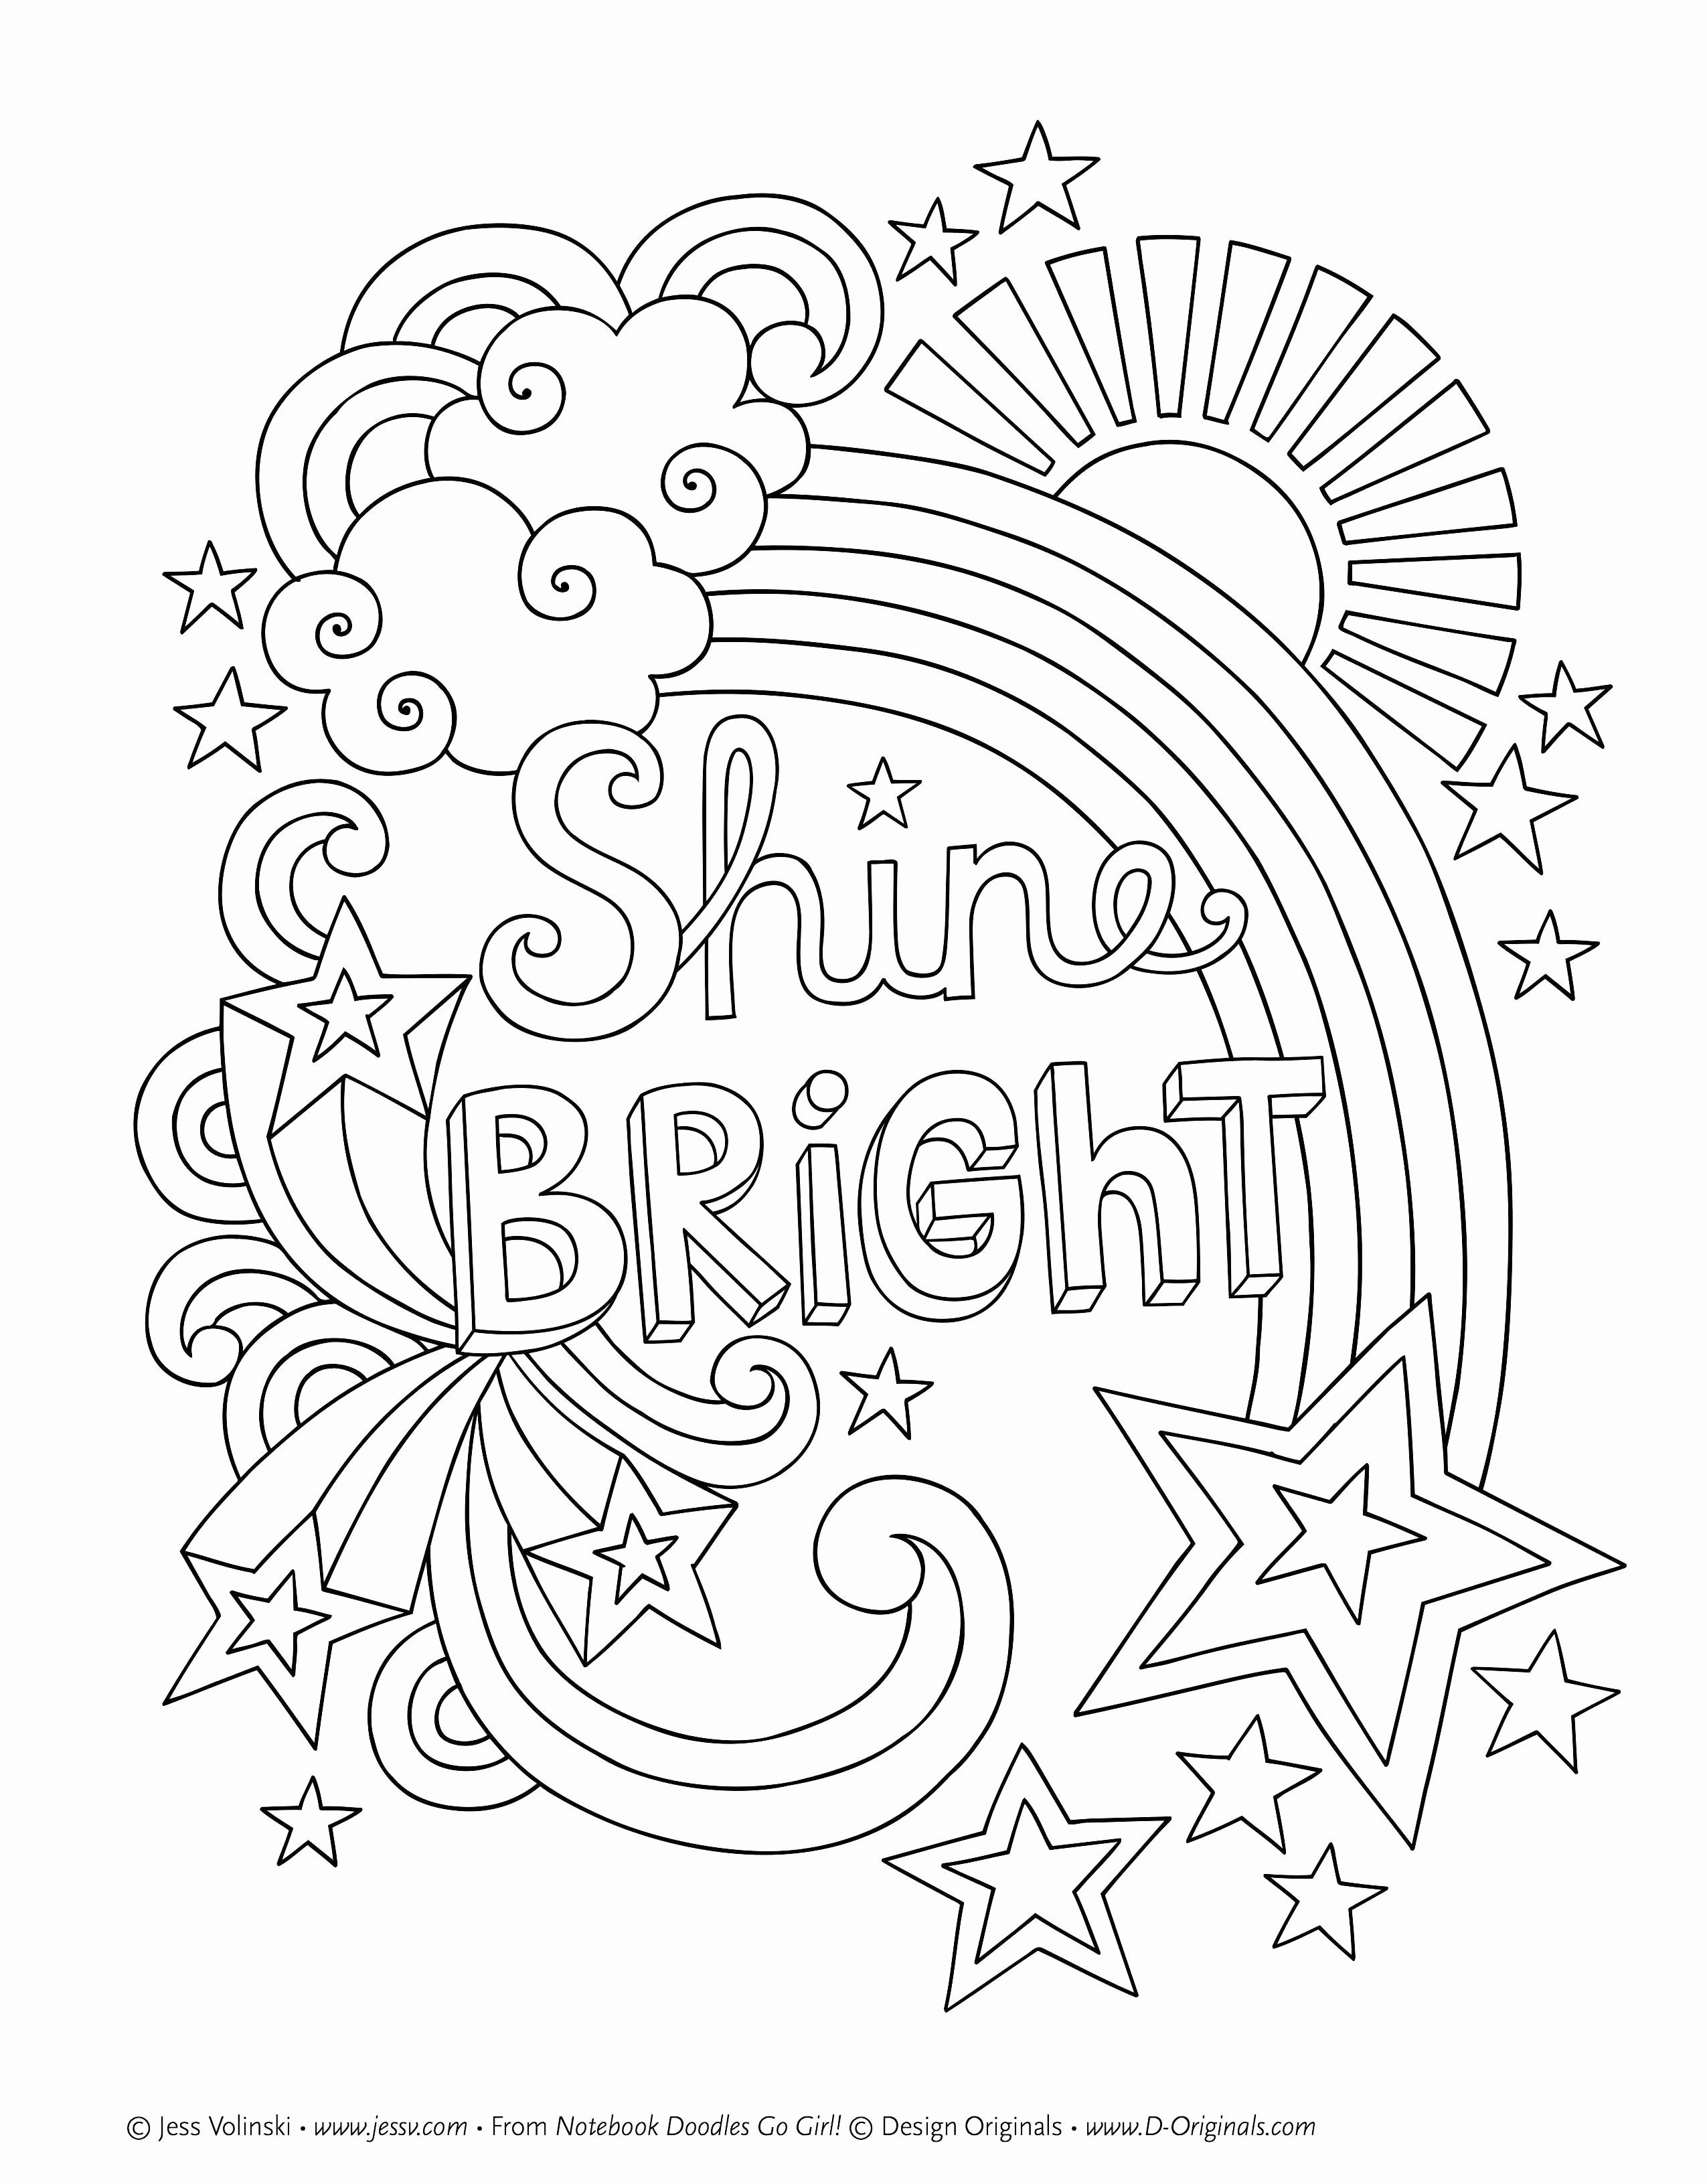 Design Originals Coloring Books For Sale Elegant Free Coloring Pages Girl Scout Cookies Huskypap Cute Coloring Pages Coloring Book Pages Quote Coloring Pages